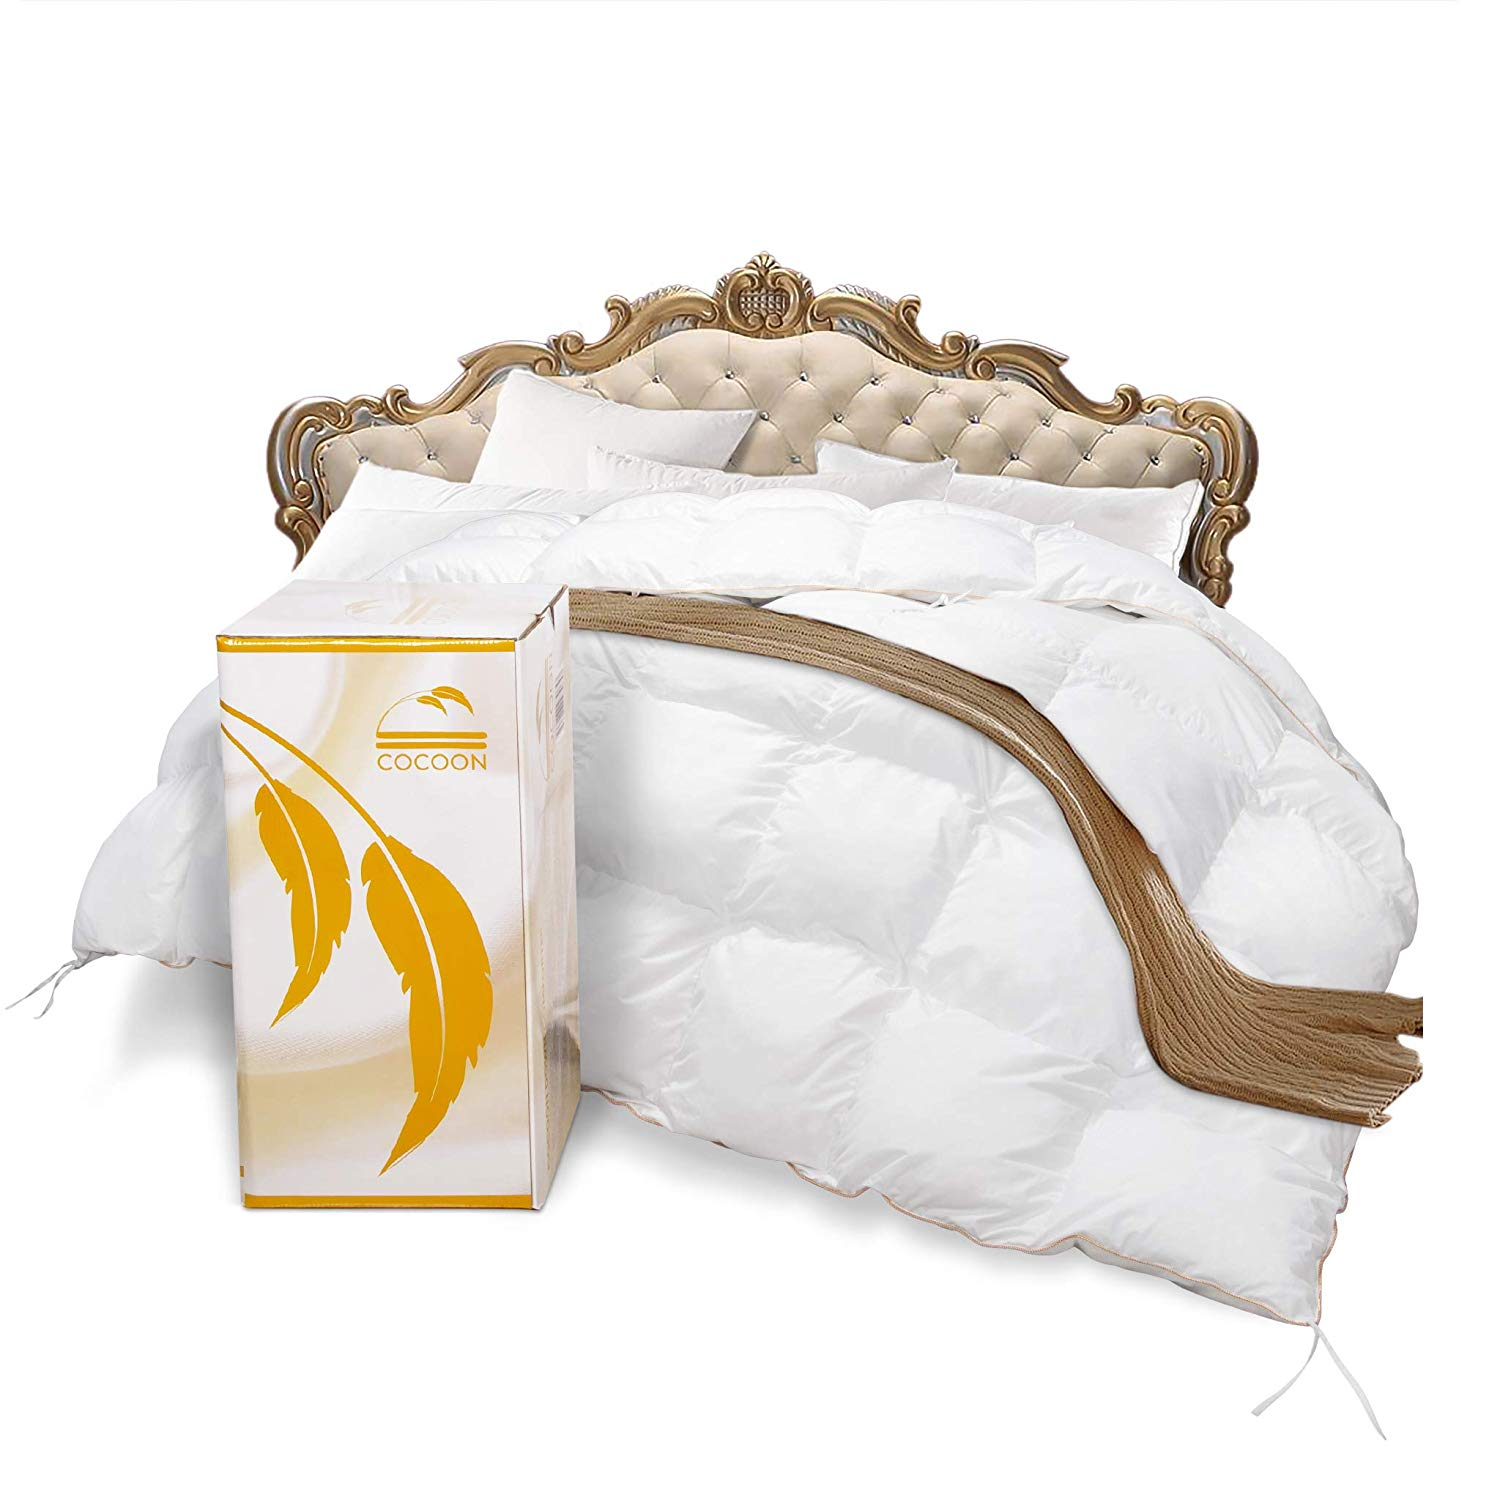 COCOON Best Down Comforter Reviews by www.snoremagazine.com